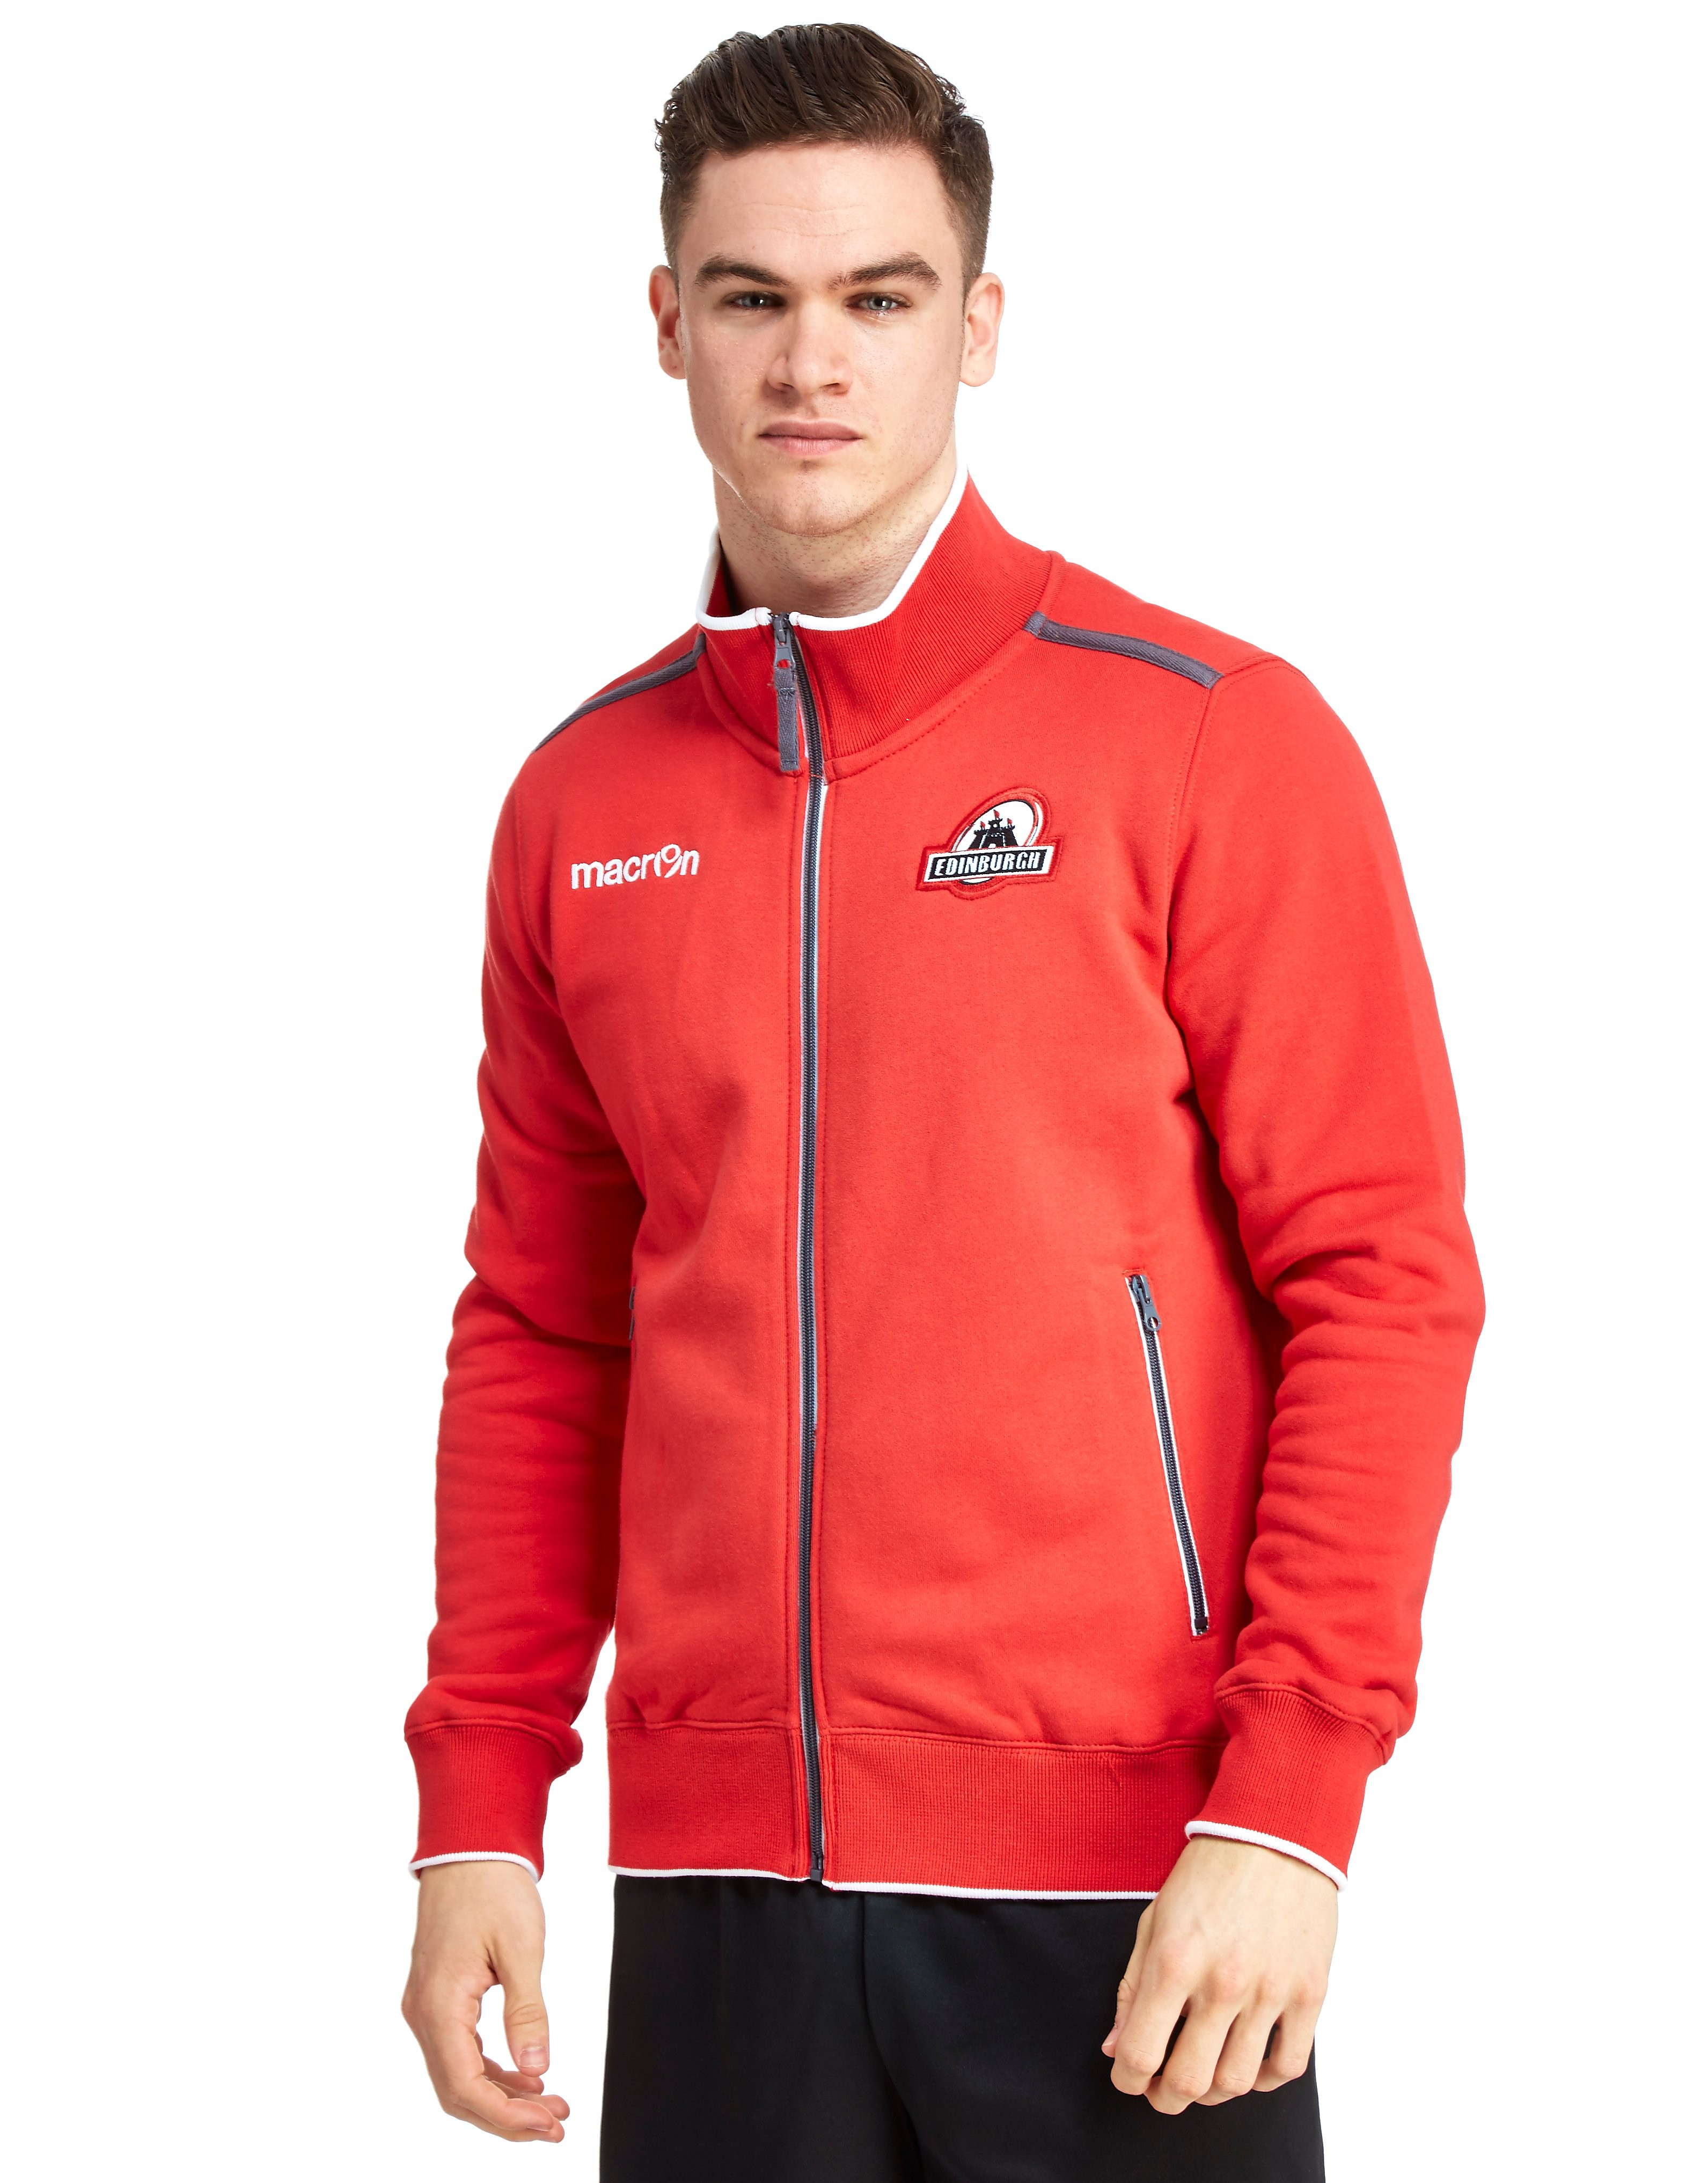 Macron Edinburgh RFU Anthem Jacket